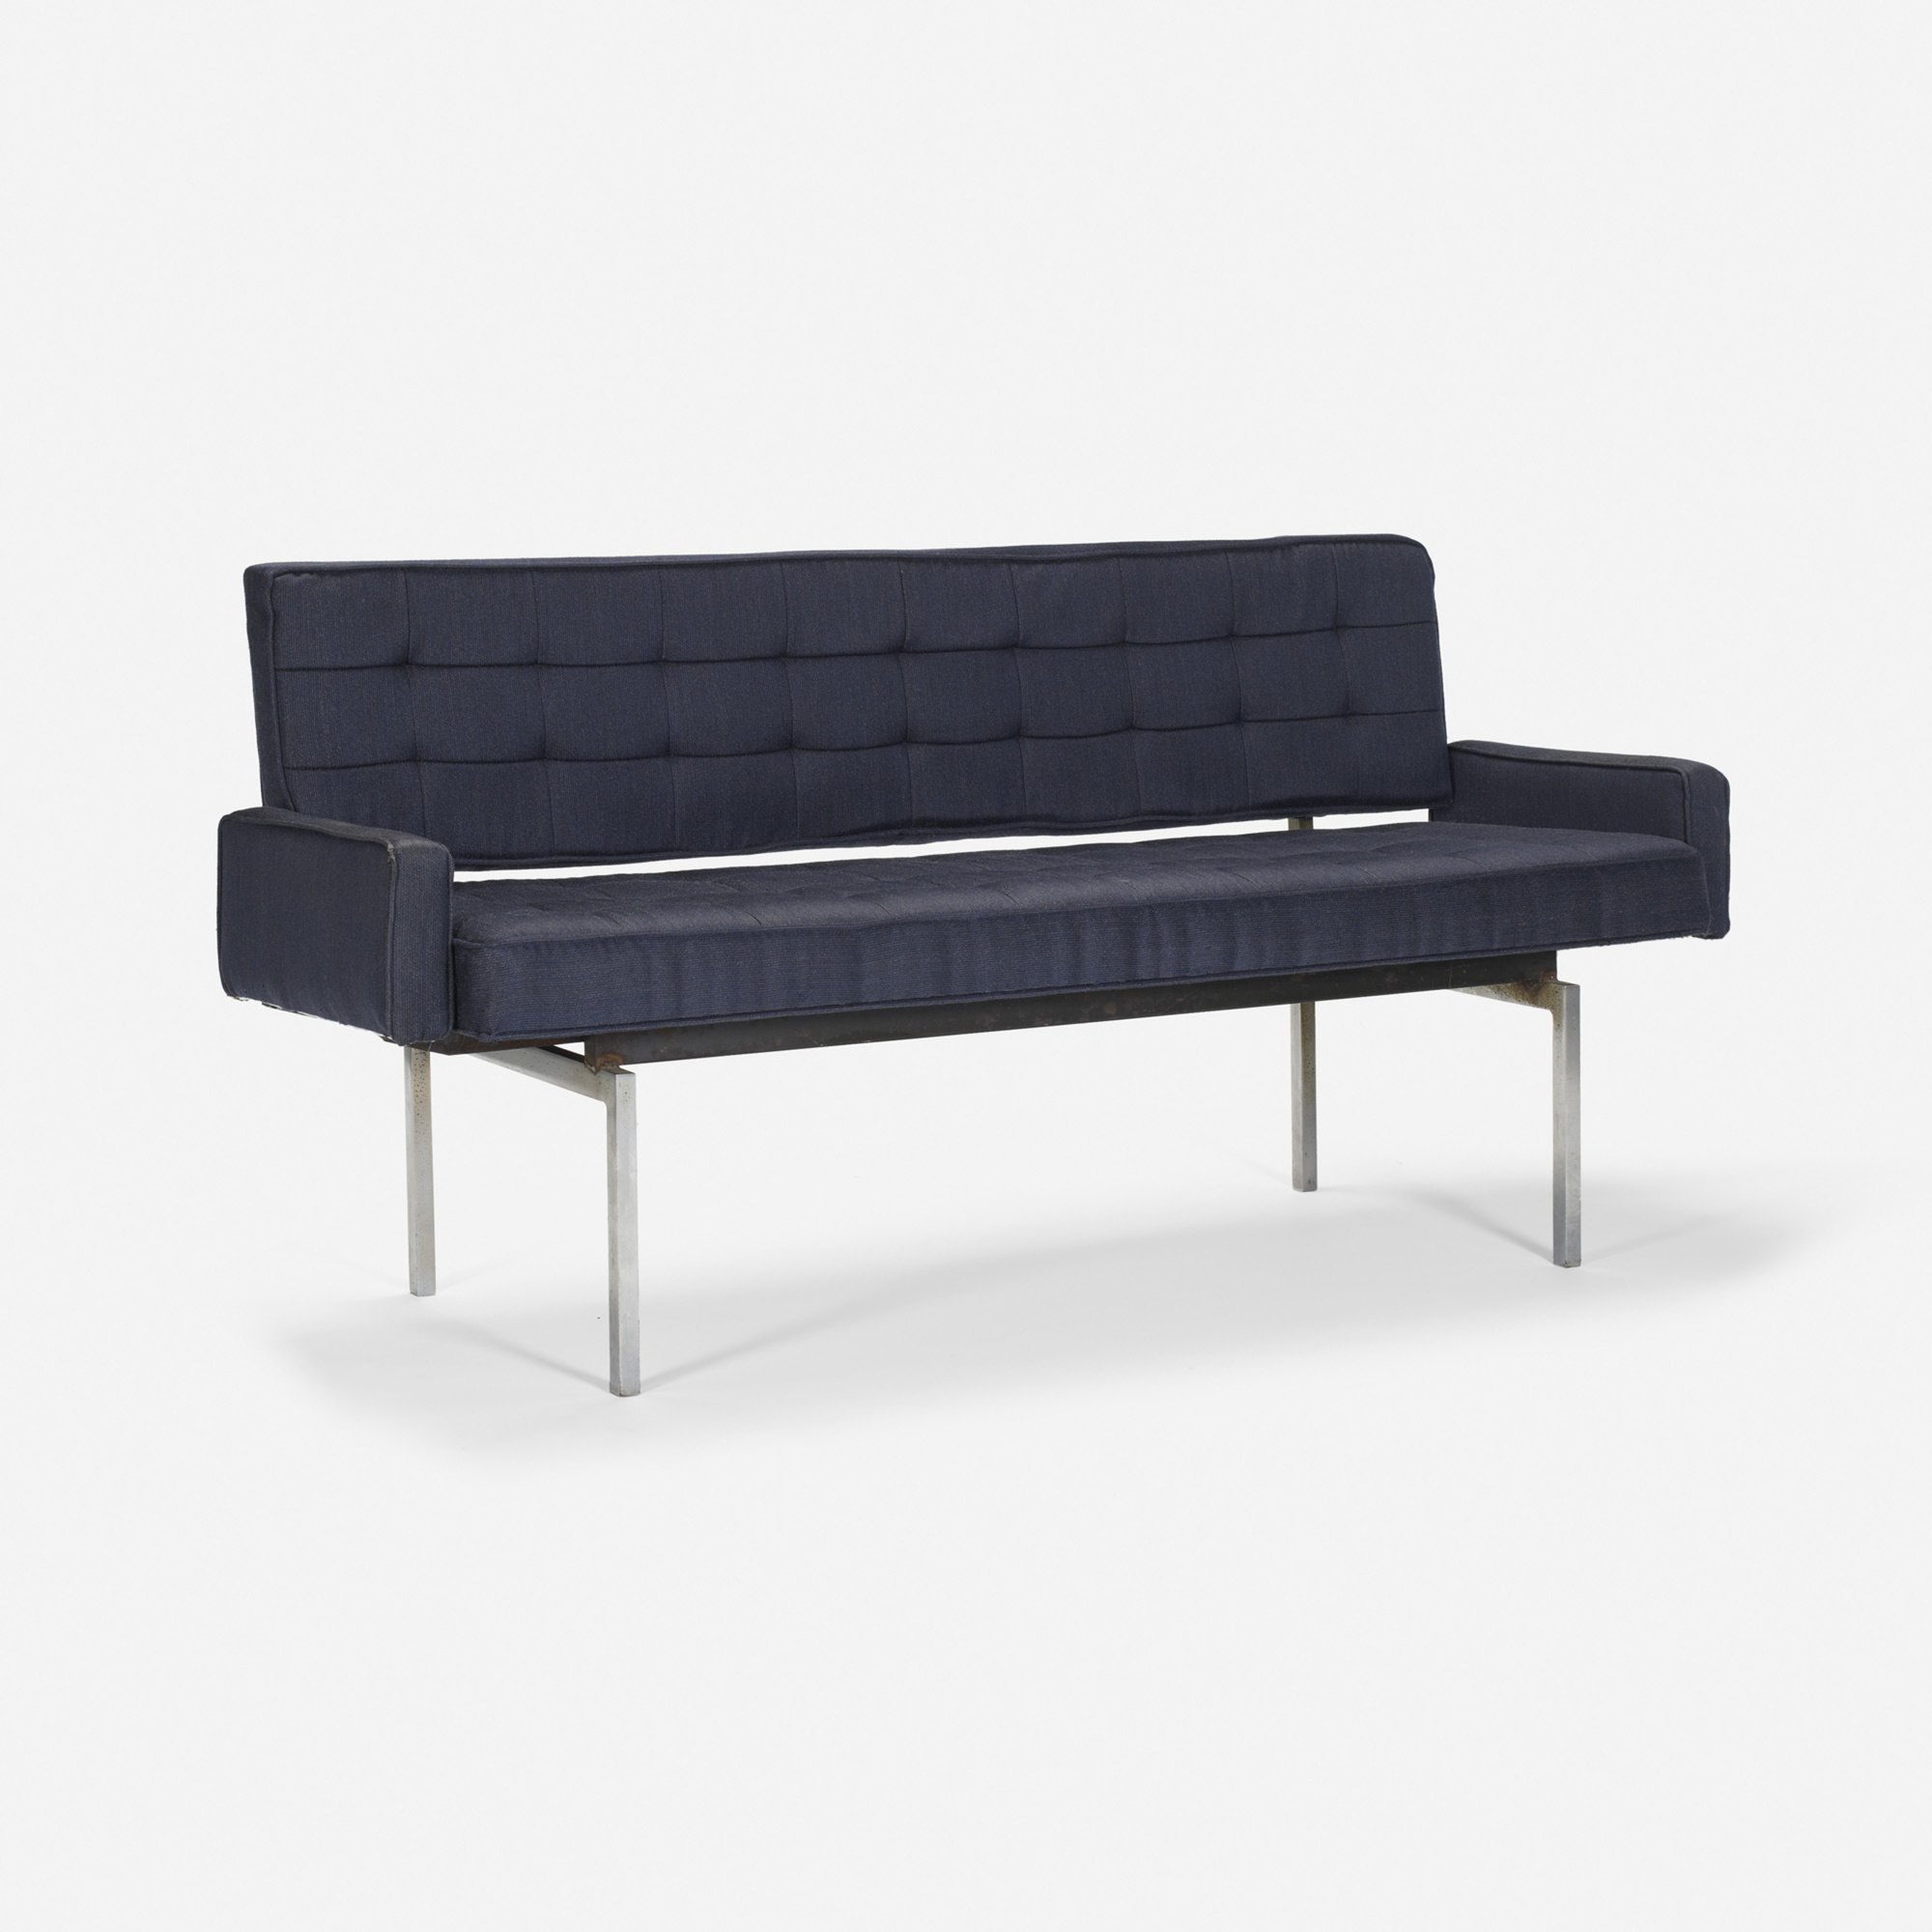 231: Philip Johnson Associates / Banquette 4 from the Grill Room (1 of 1)